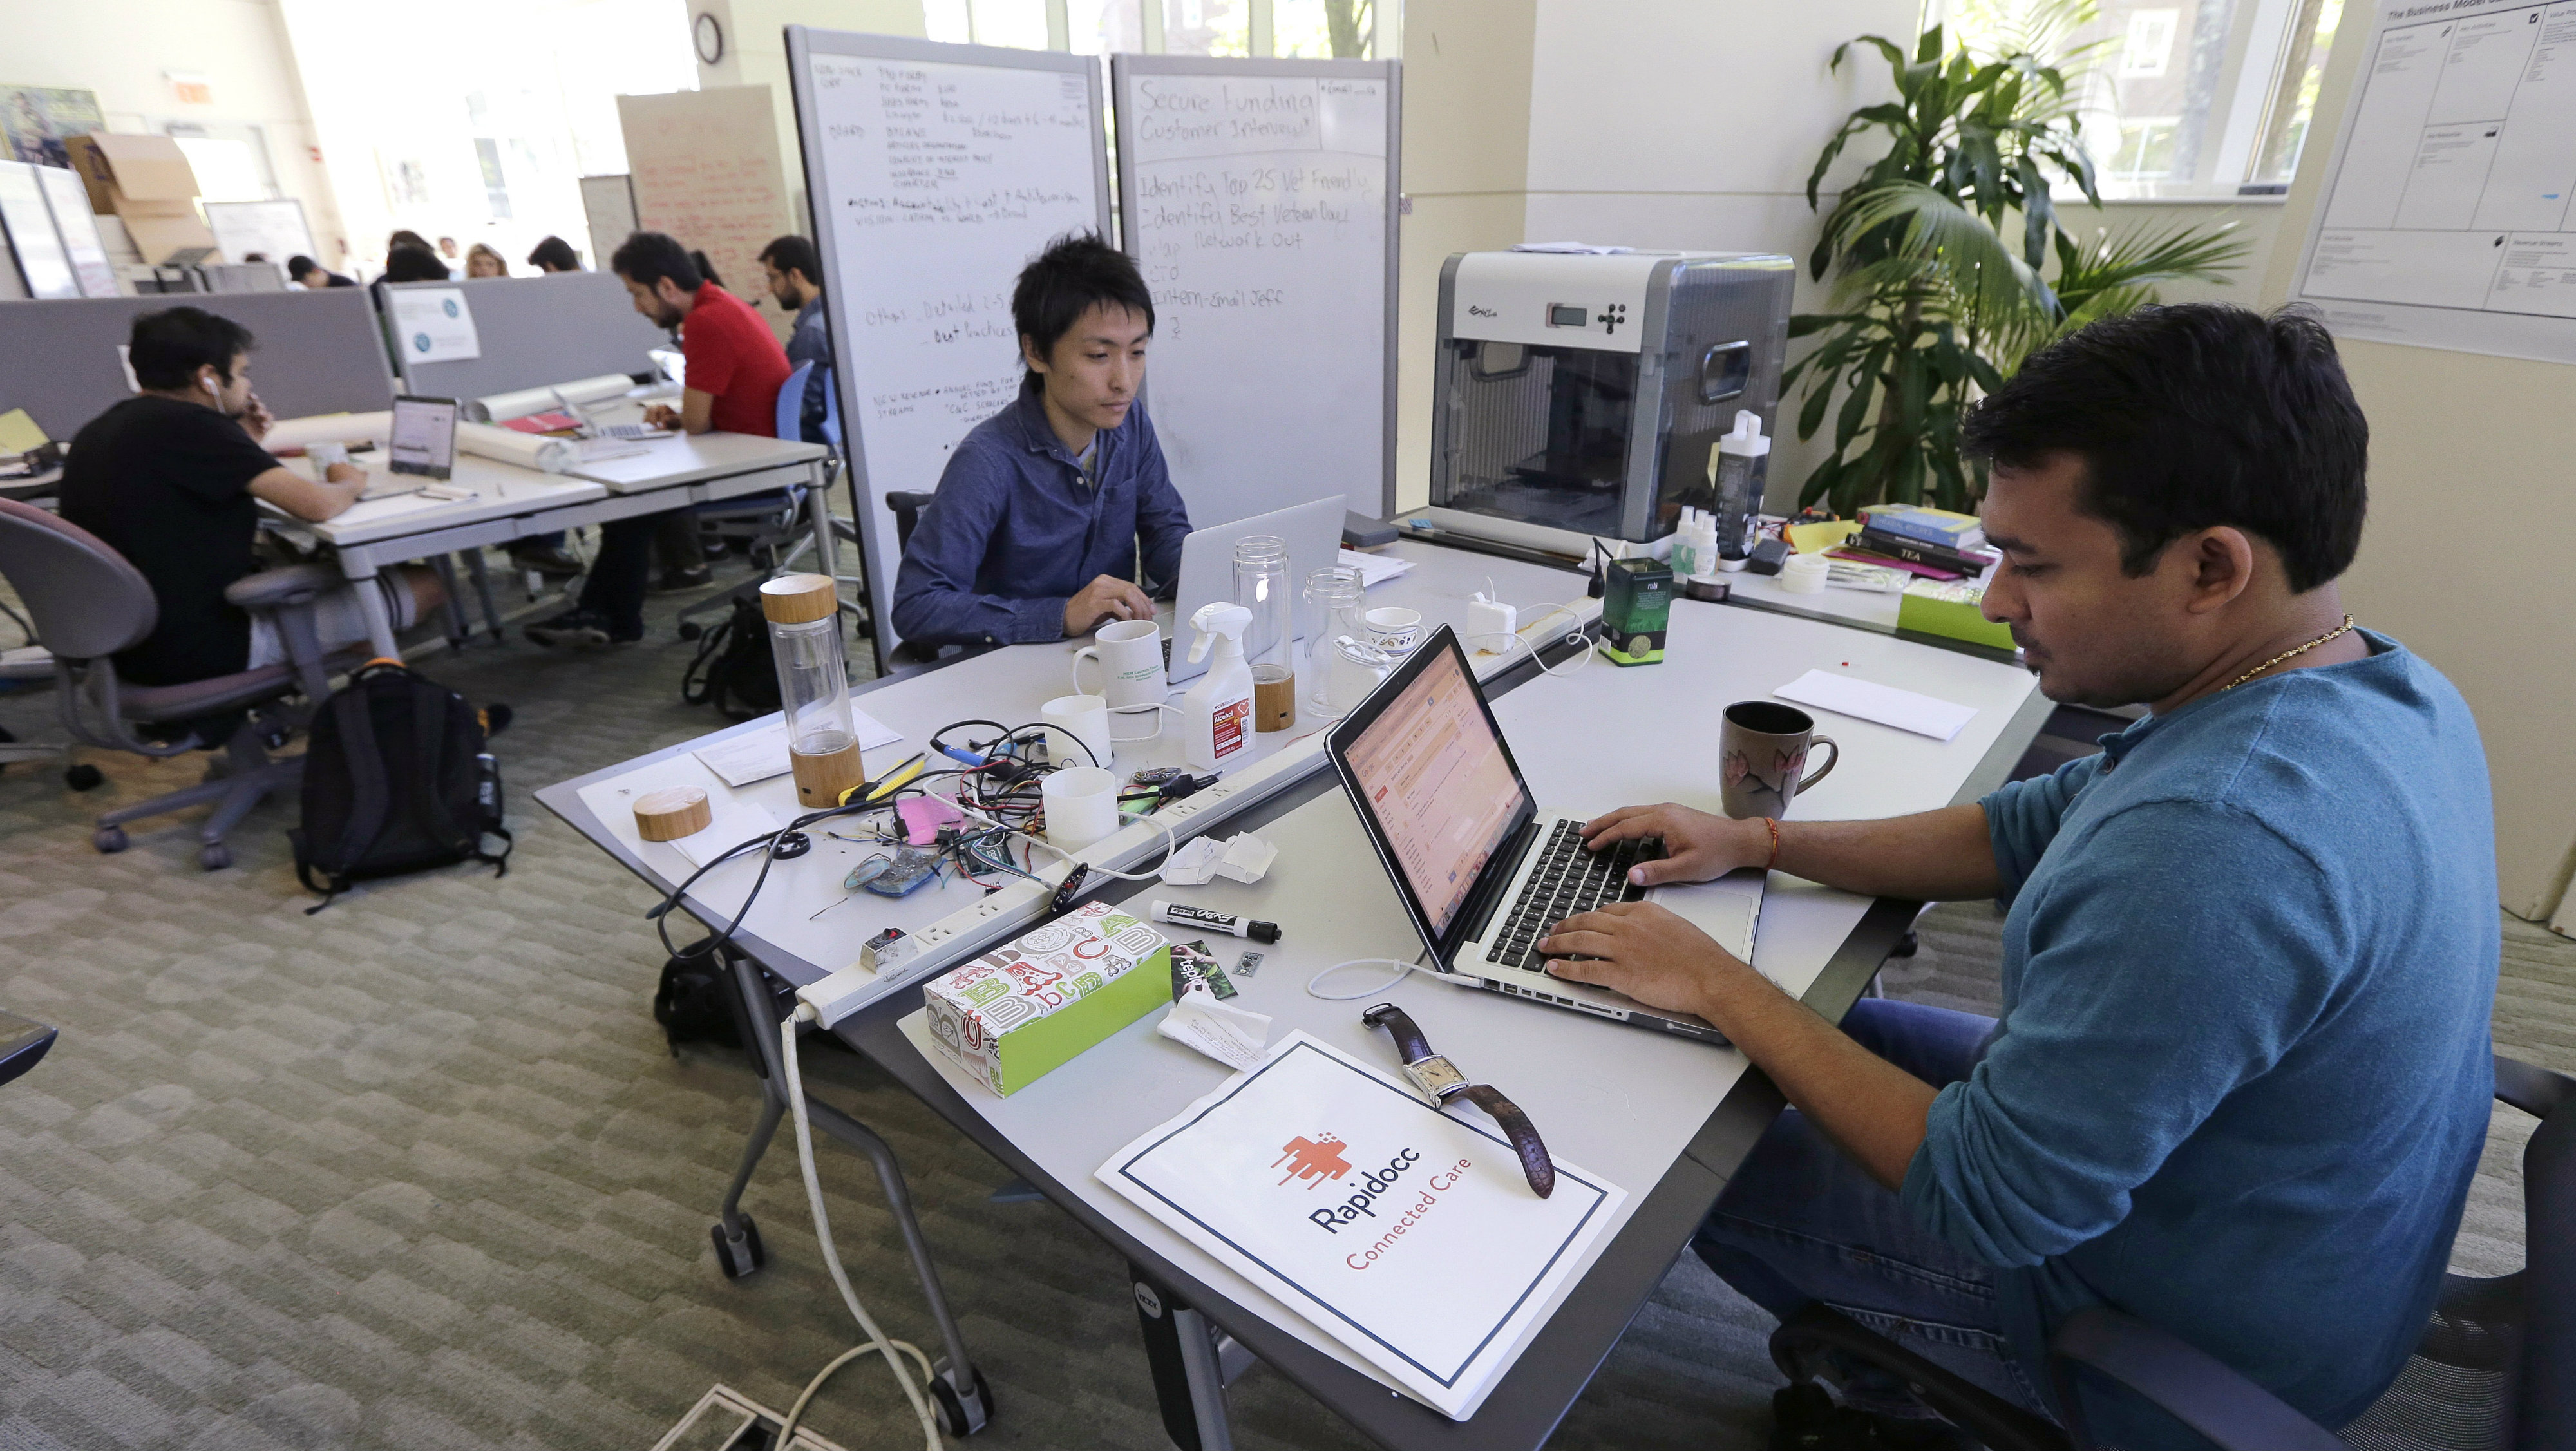 In this Thursday, June 30, 2016 photo, Babson College graduate school alumnus Abhinav Sureka, of Mumbai, India, right, types in his work space at the college in Wellesley, Mass. Some U.S. colleges are starting programs to help their alumni get visas through what critics say is a legal loophole. Foreign grads who want to stay and start a business typically apply for one of the 85,000 H-1B visas that the U.S. gives out each year. But college employees are exempt from that cap, so schools like UMass, Babson and CUNY have launched programs to hire alumni and foreign entrepreneurs and help them grow their businesses here.